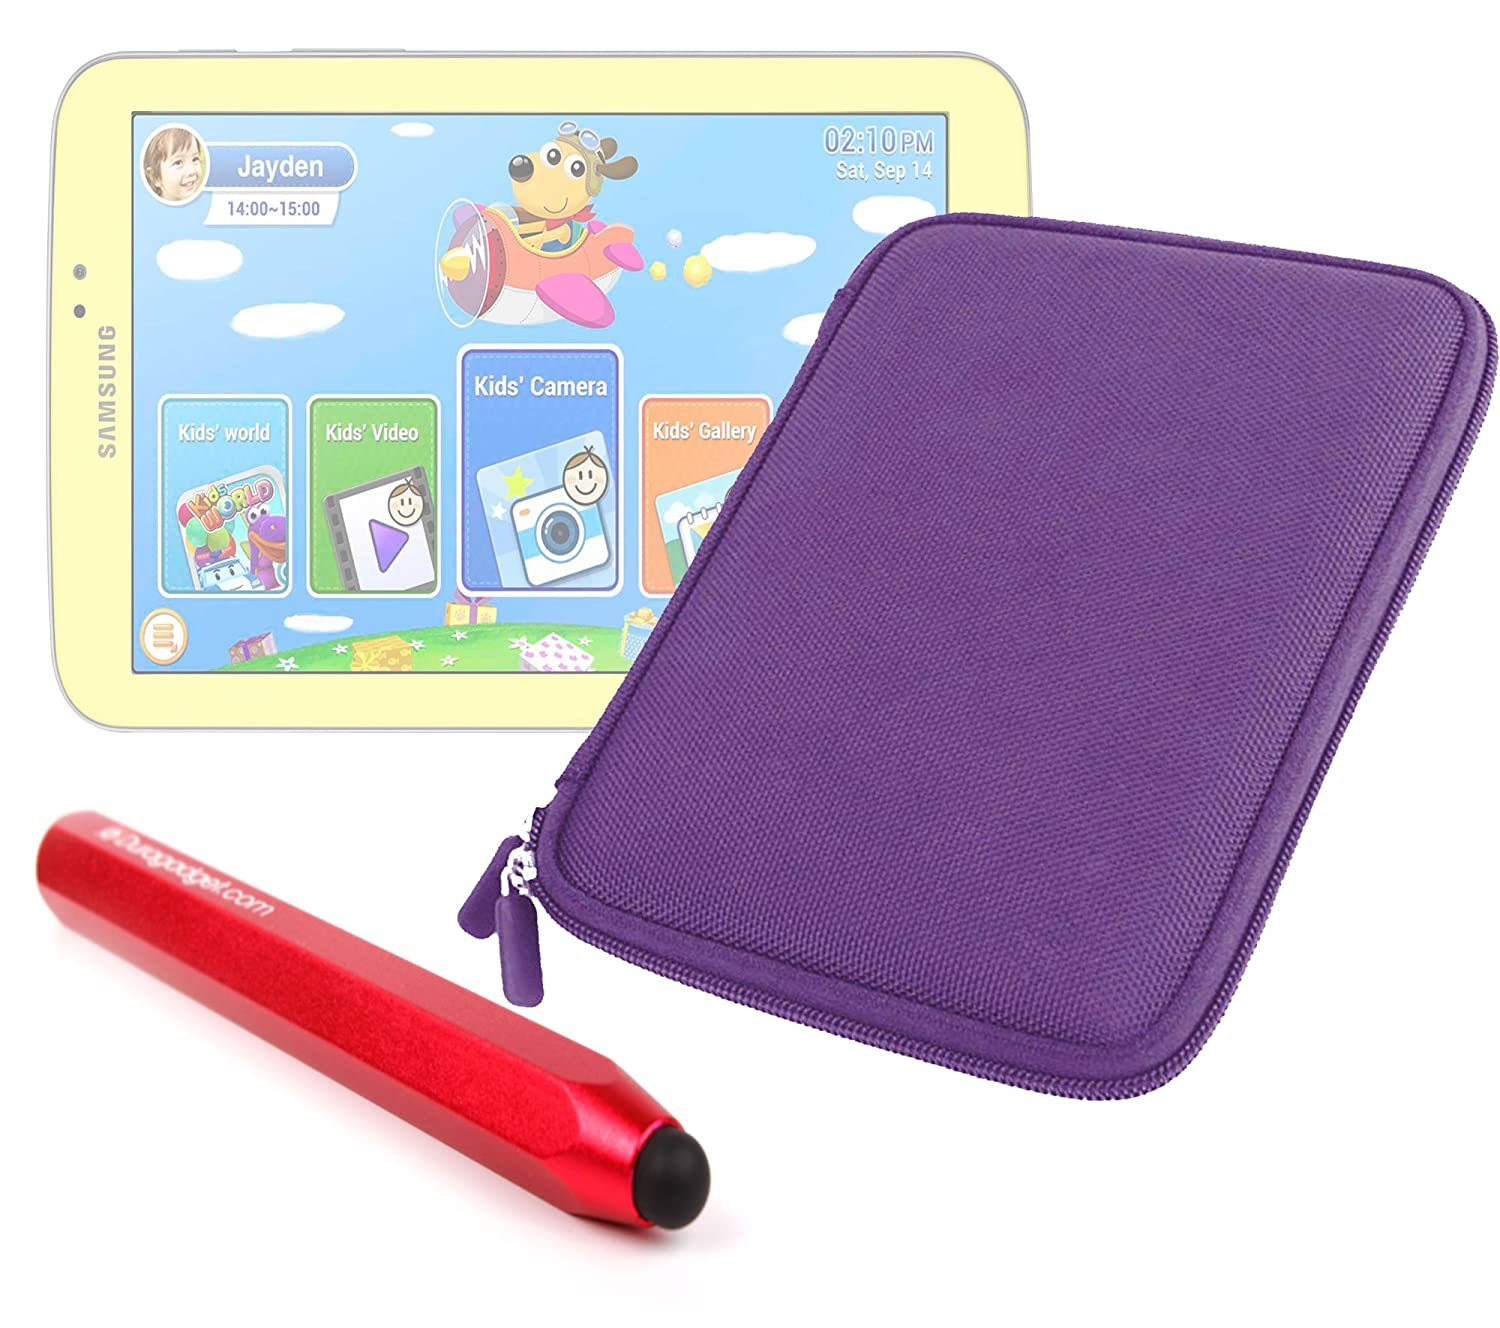 DURAGADGET Tough水&傷付きパープルEva Zip Case B00FQGQTB2 +レッドTouchscreen Stylusペンfor Samsung Galaxy Galaxy Tab Tab 3 Kids B00FQGQTB2, ビビット通販:3e1aa906 --- capela.eng.br